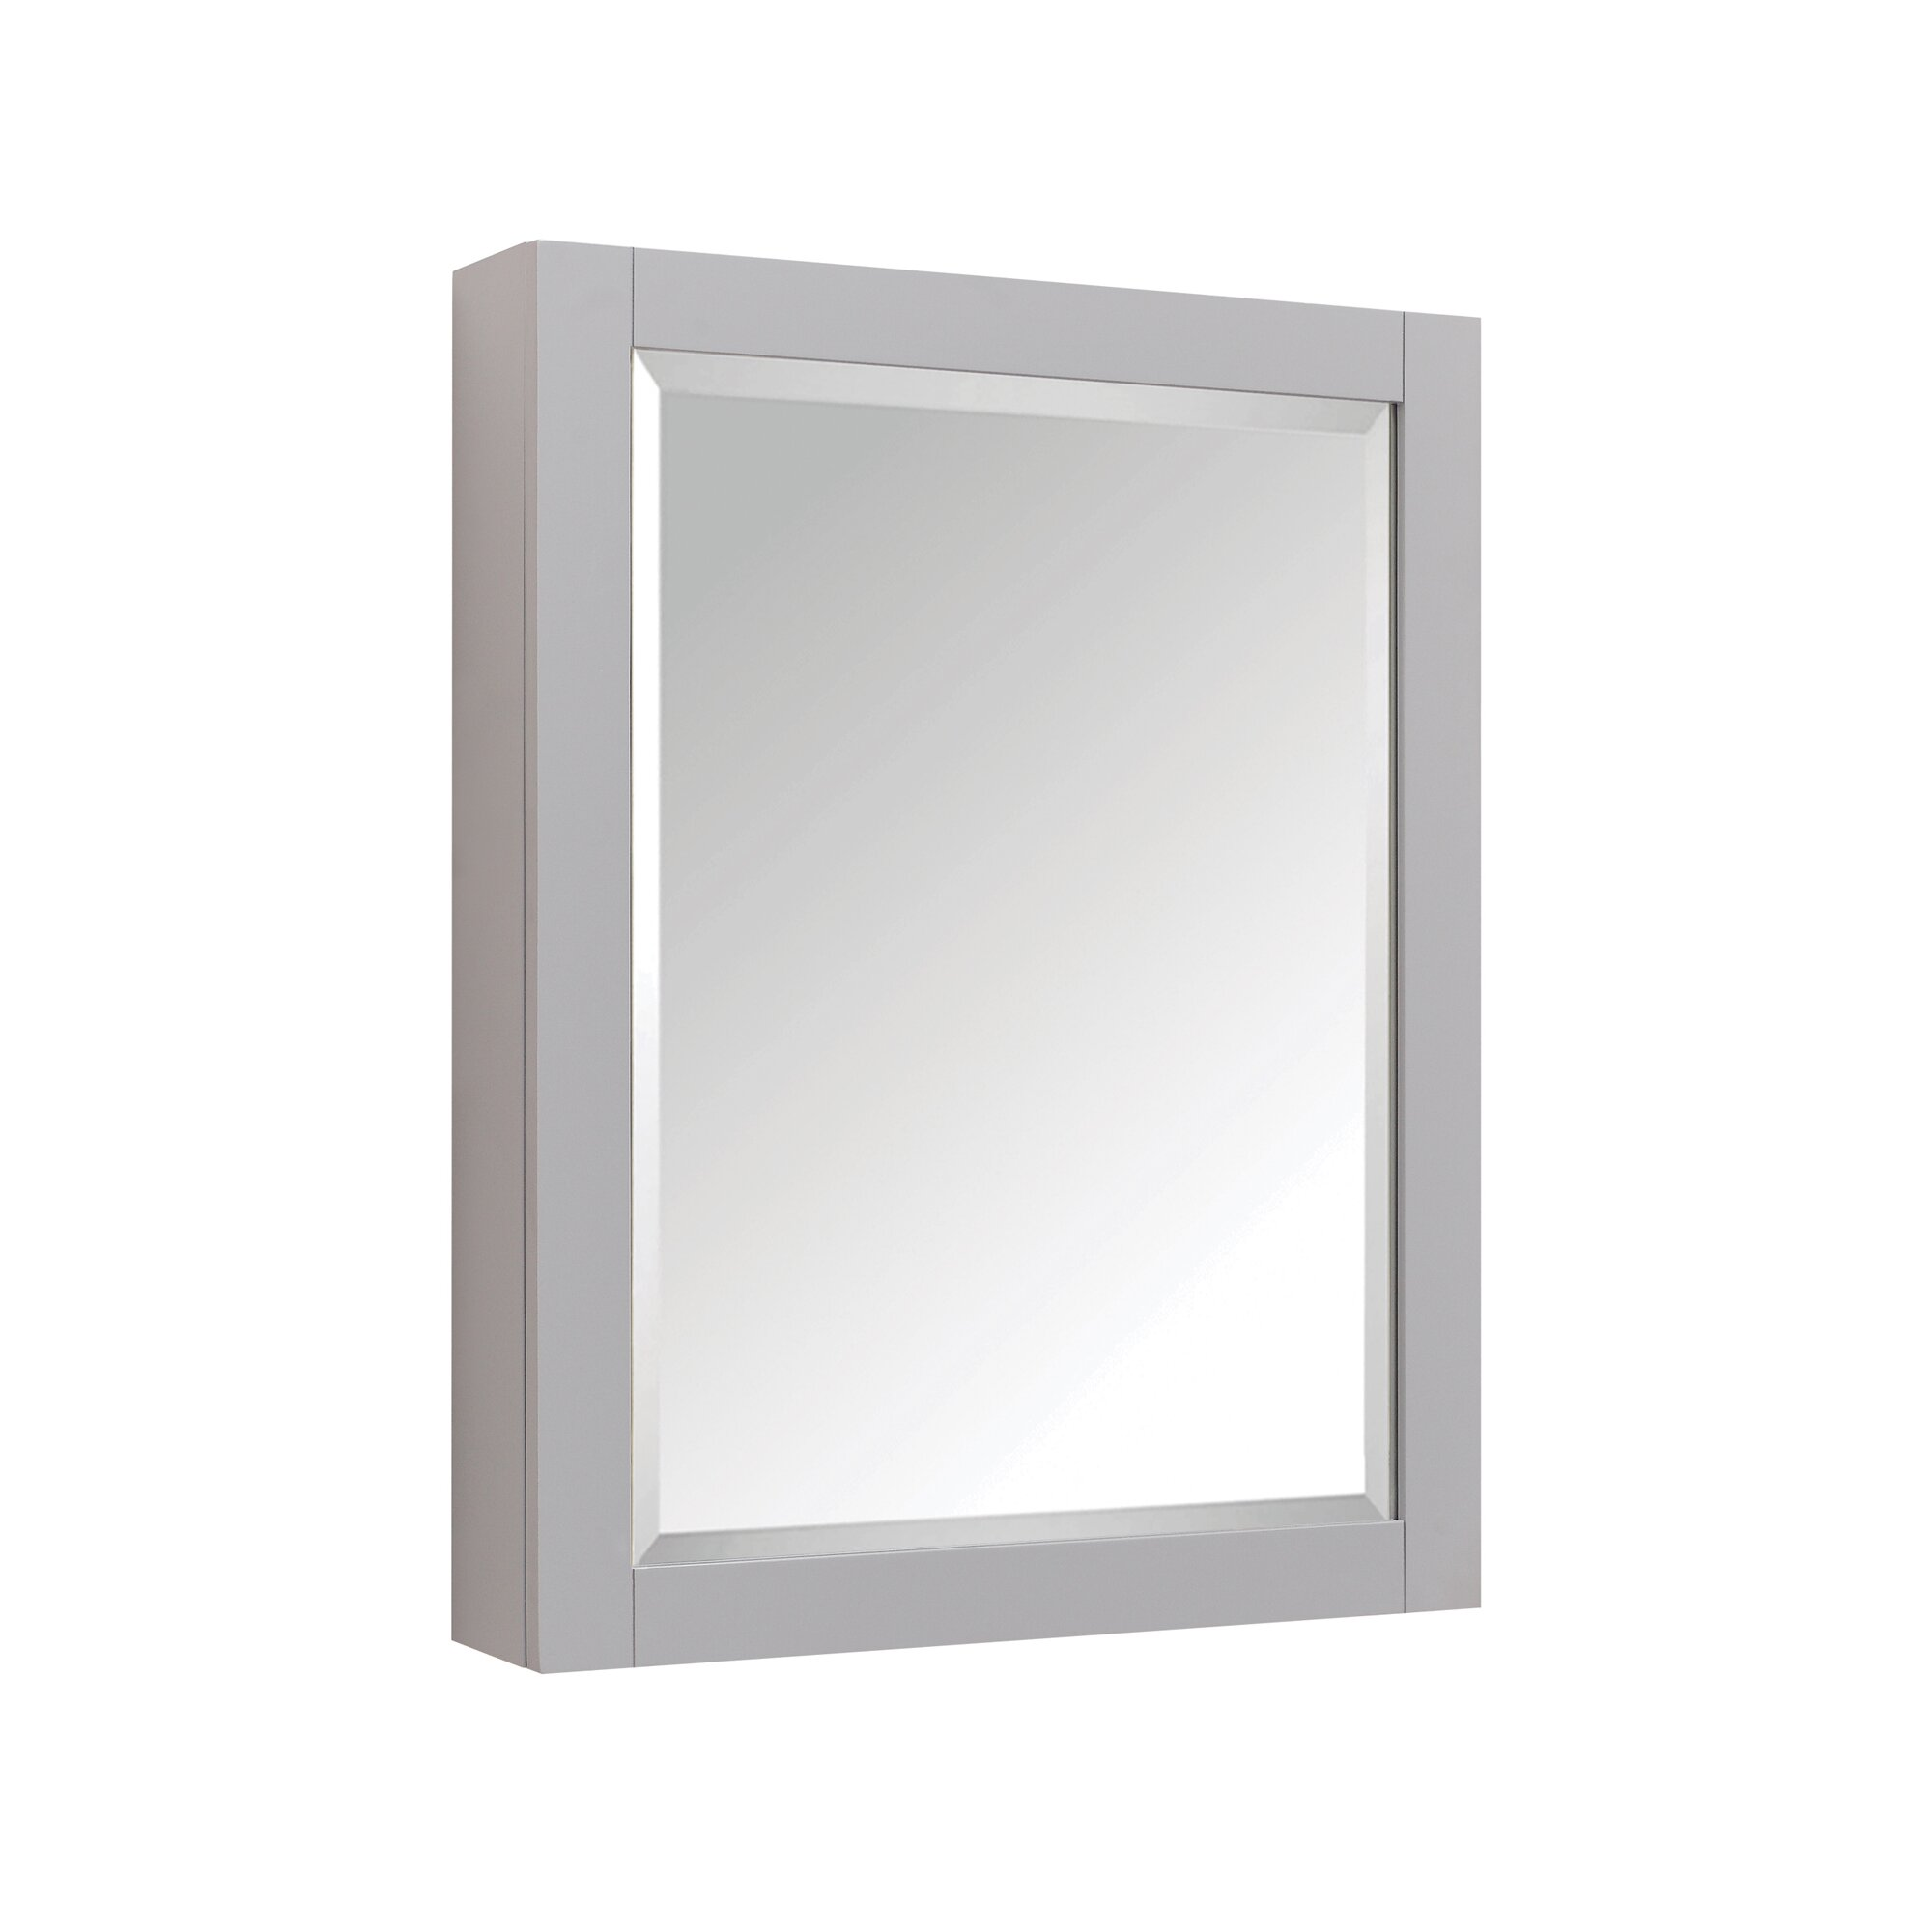 Vanity Light Over Surface Mounted Medicine Cabinet : Avanity Surface Mount Medicine Cabinet Wayfair.ca